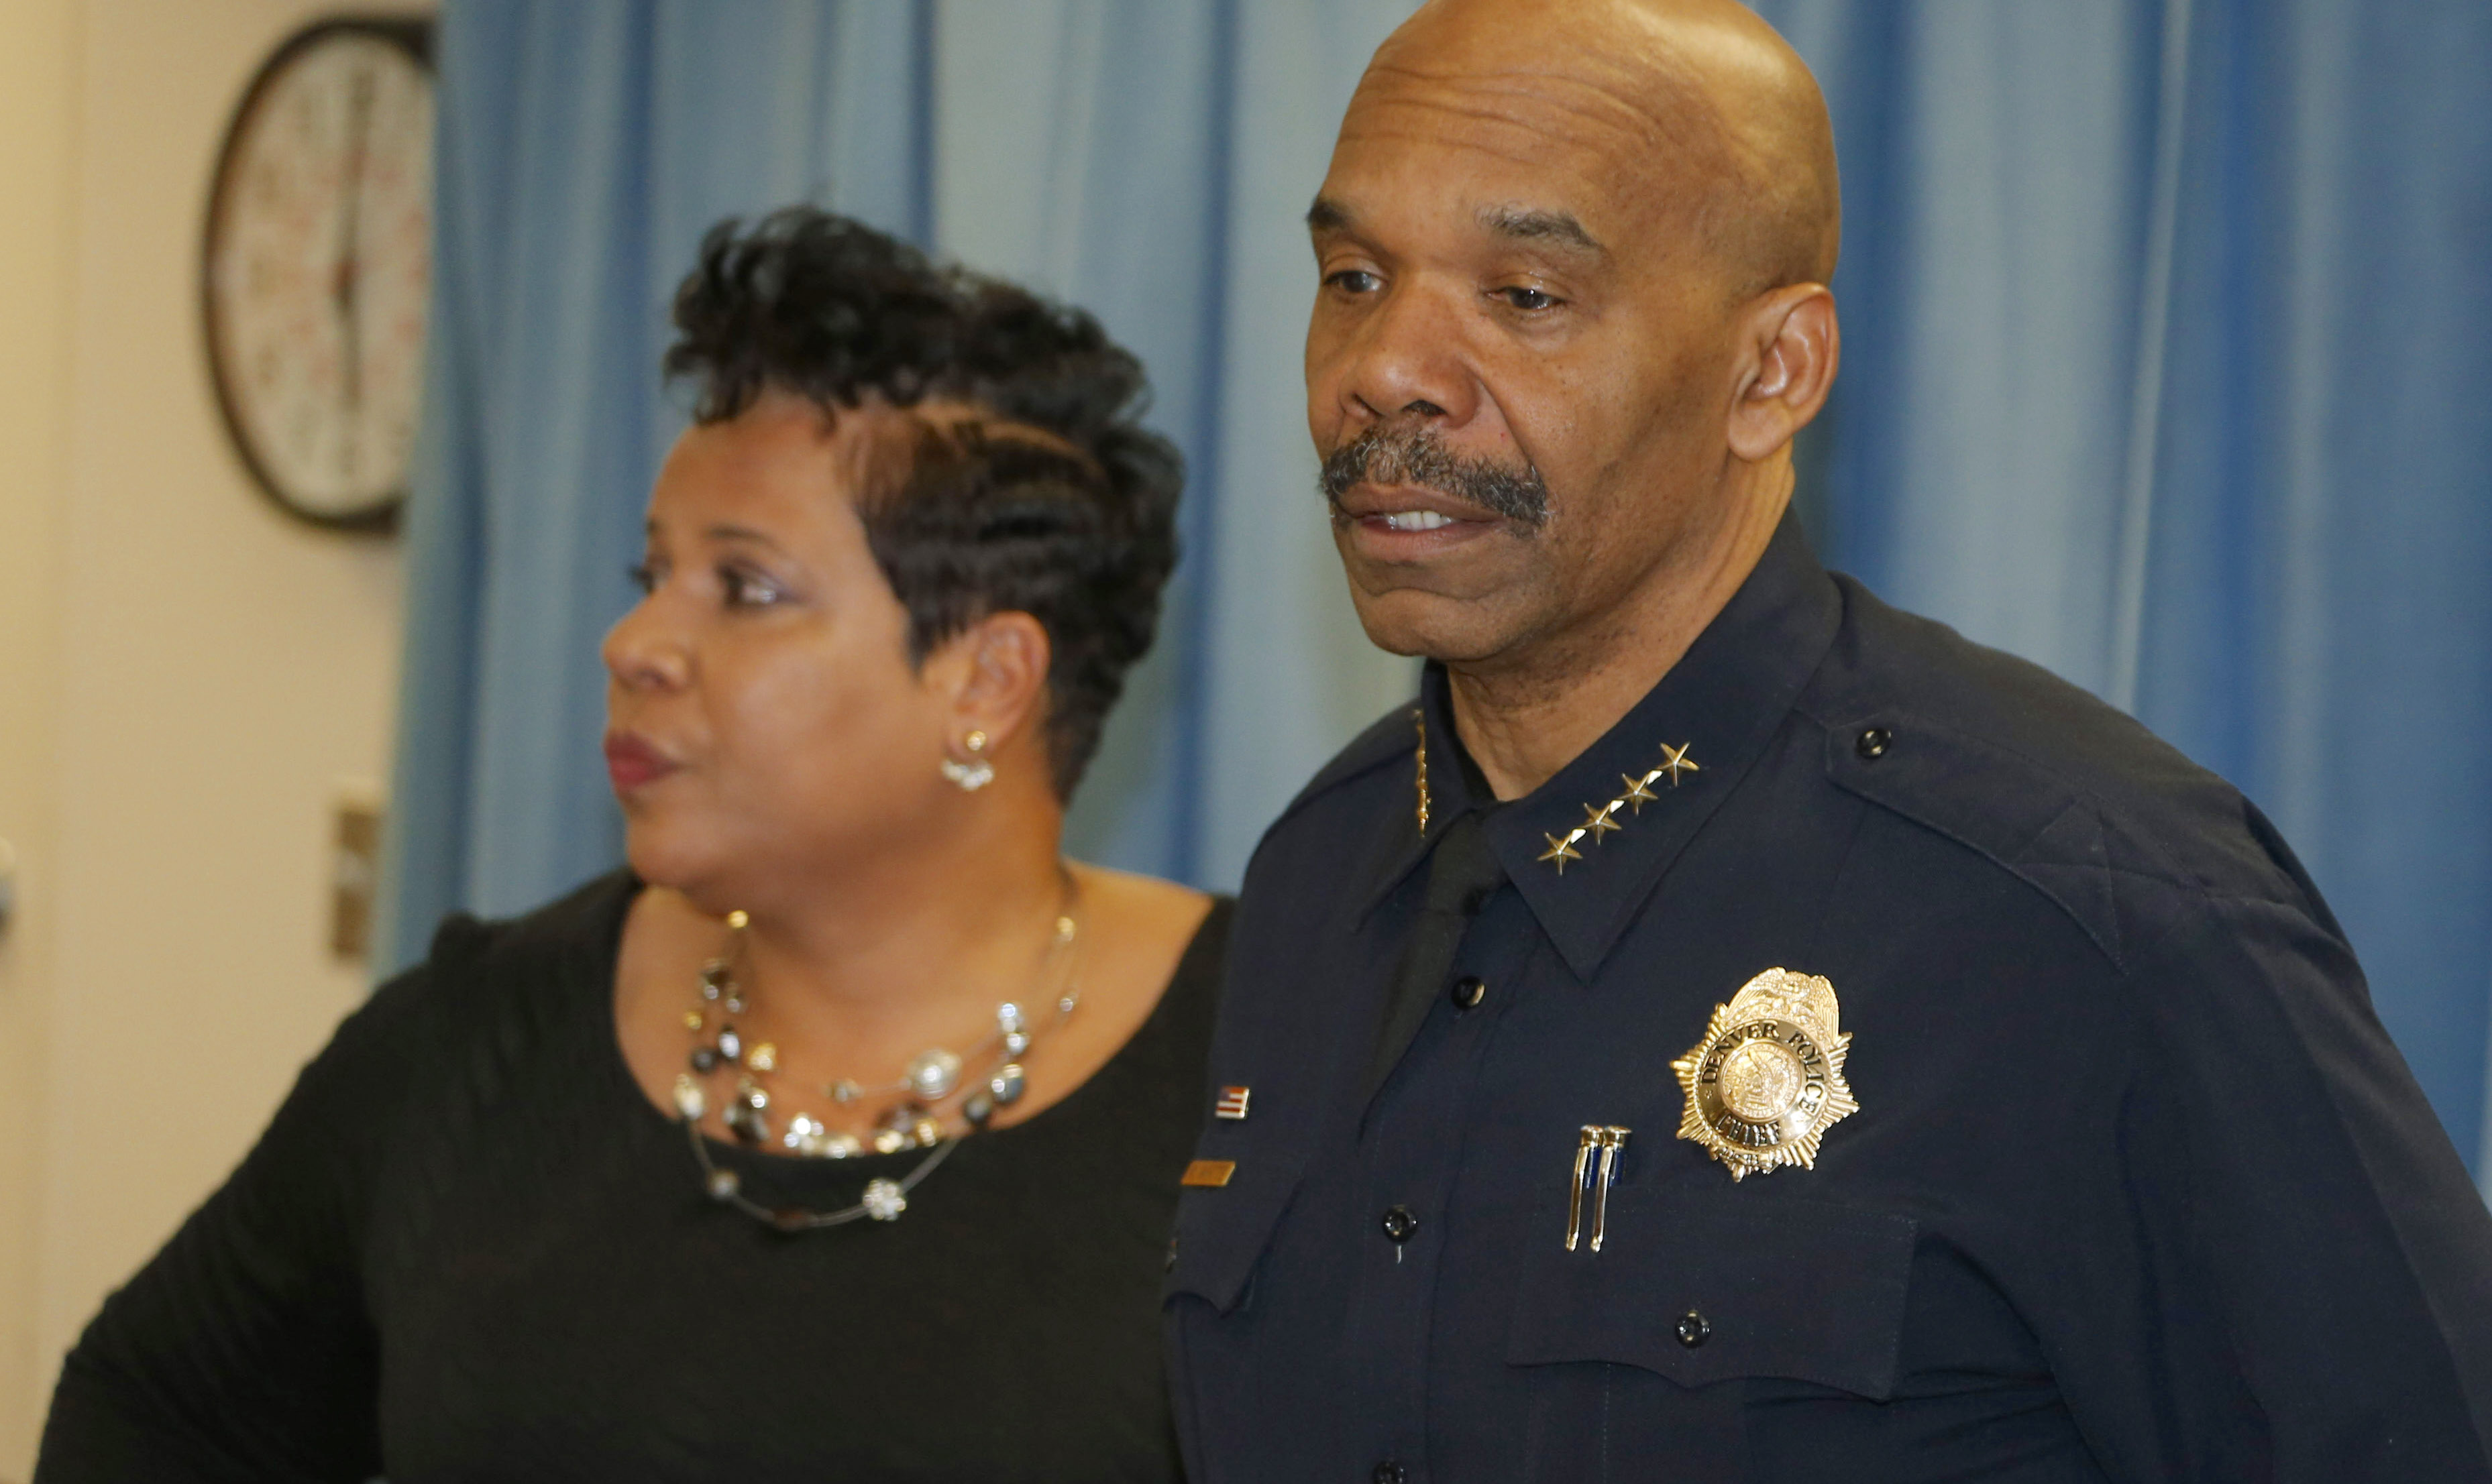 Photo: Denver Police Chief Robert White, Colliseum Shooting Presser